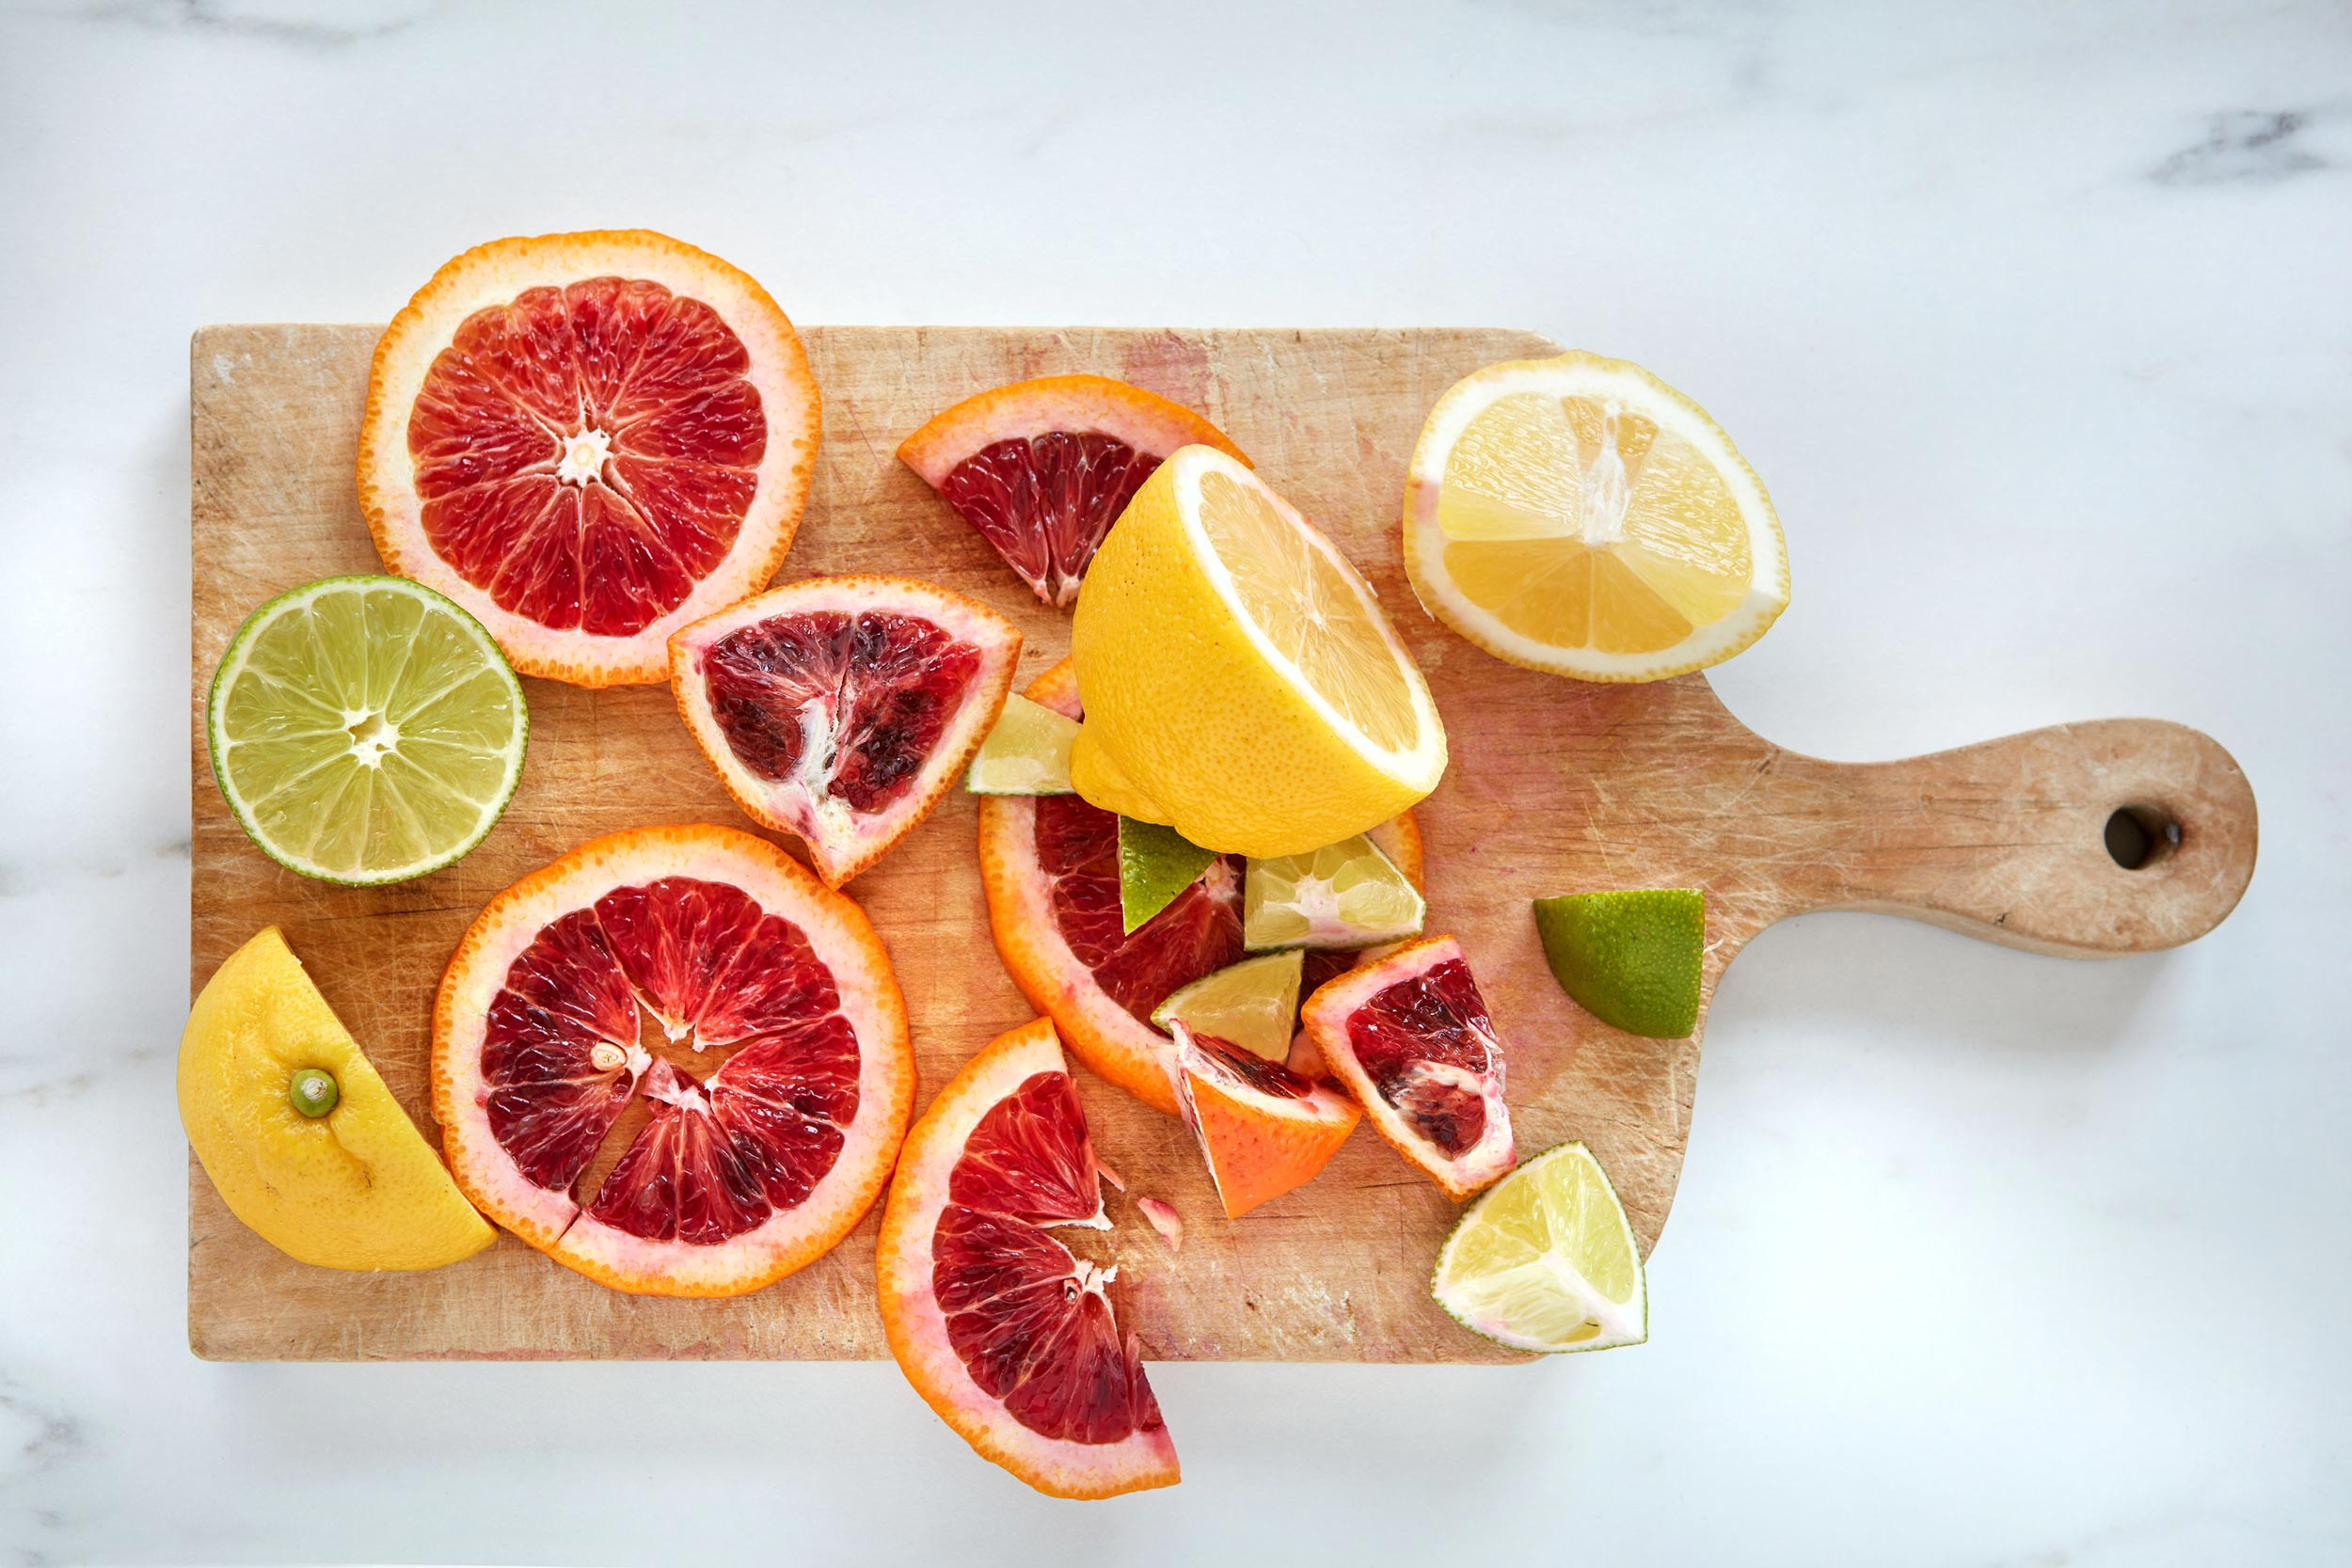 Bublys-Photography-citrus-cutting-board-WEB